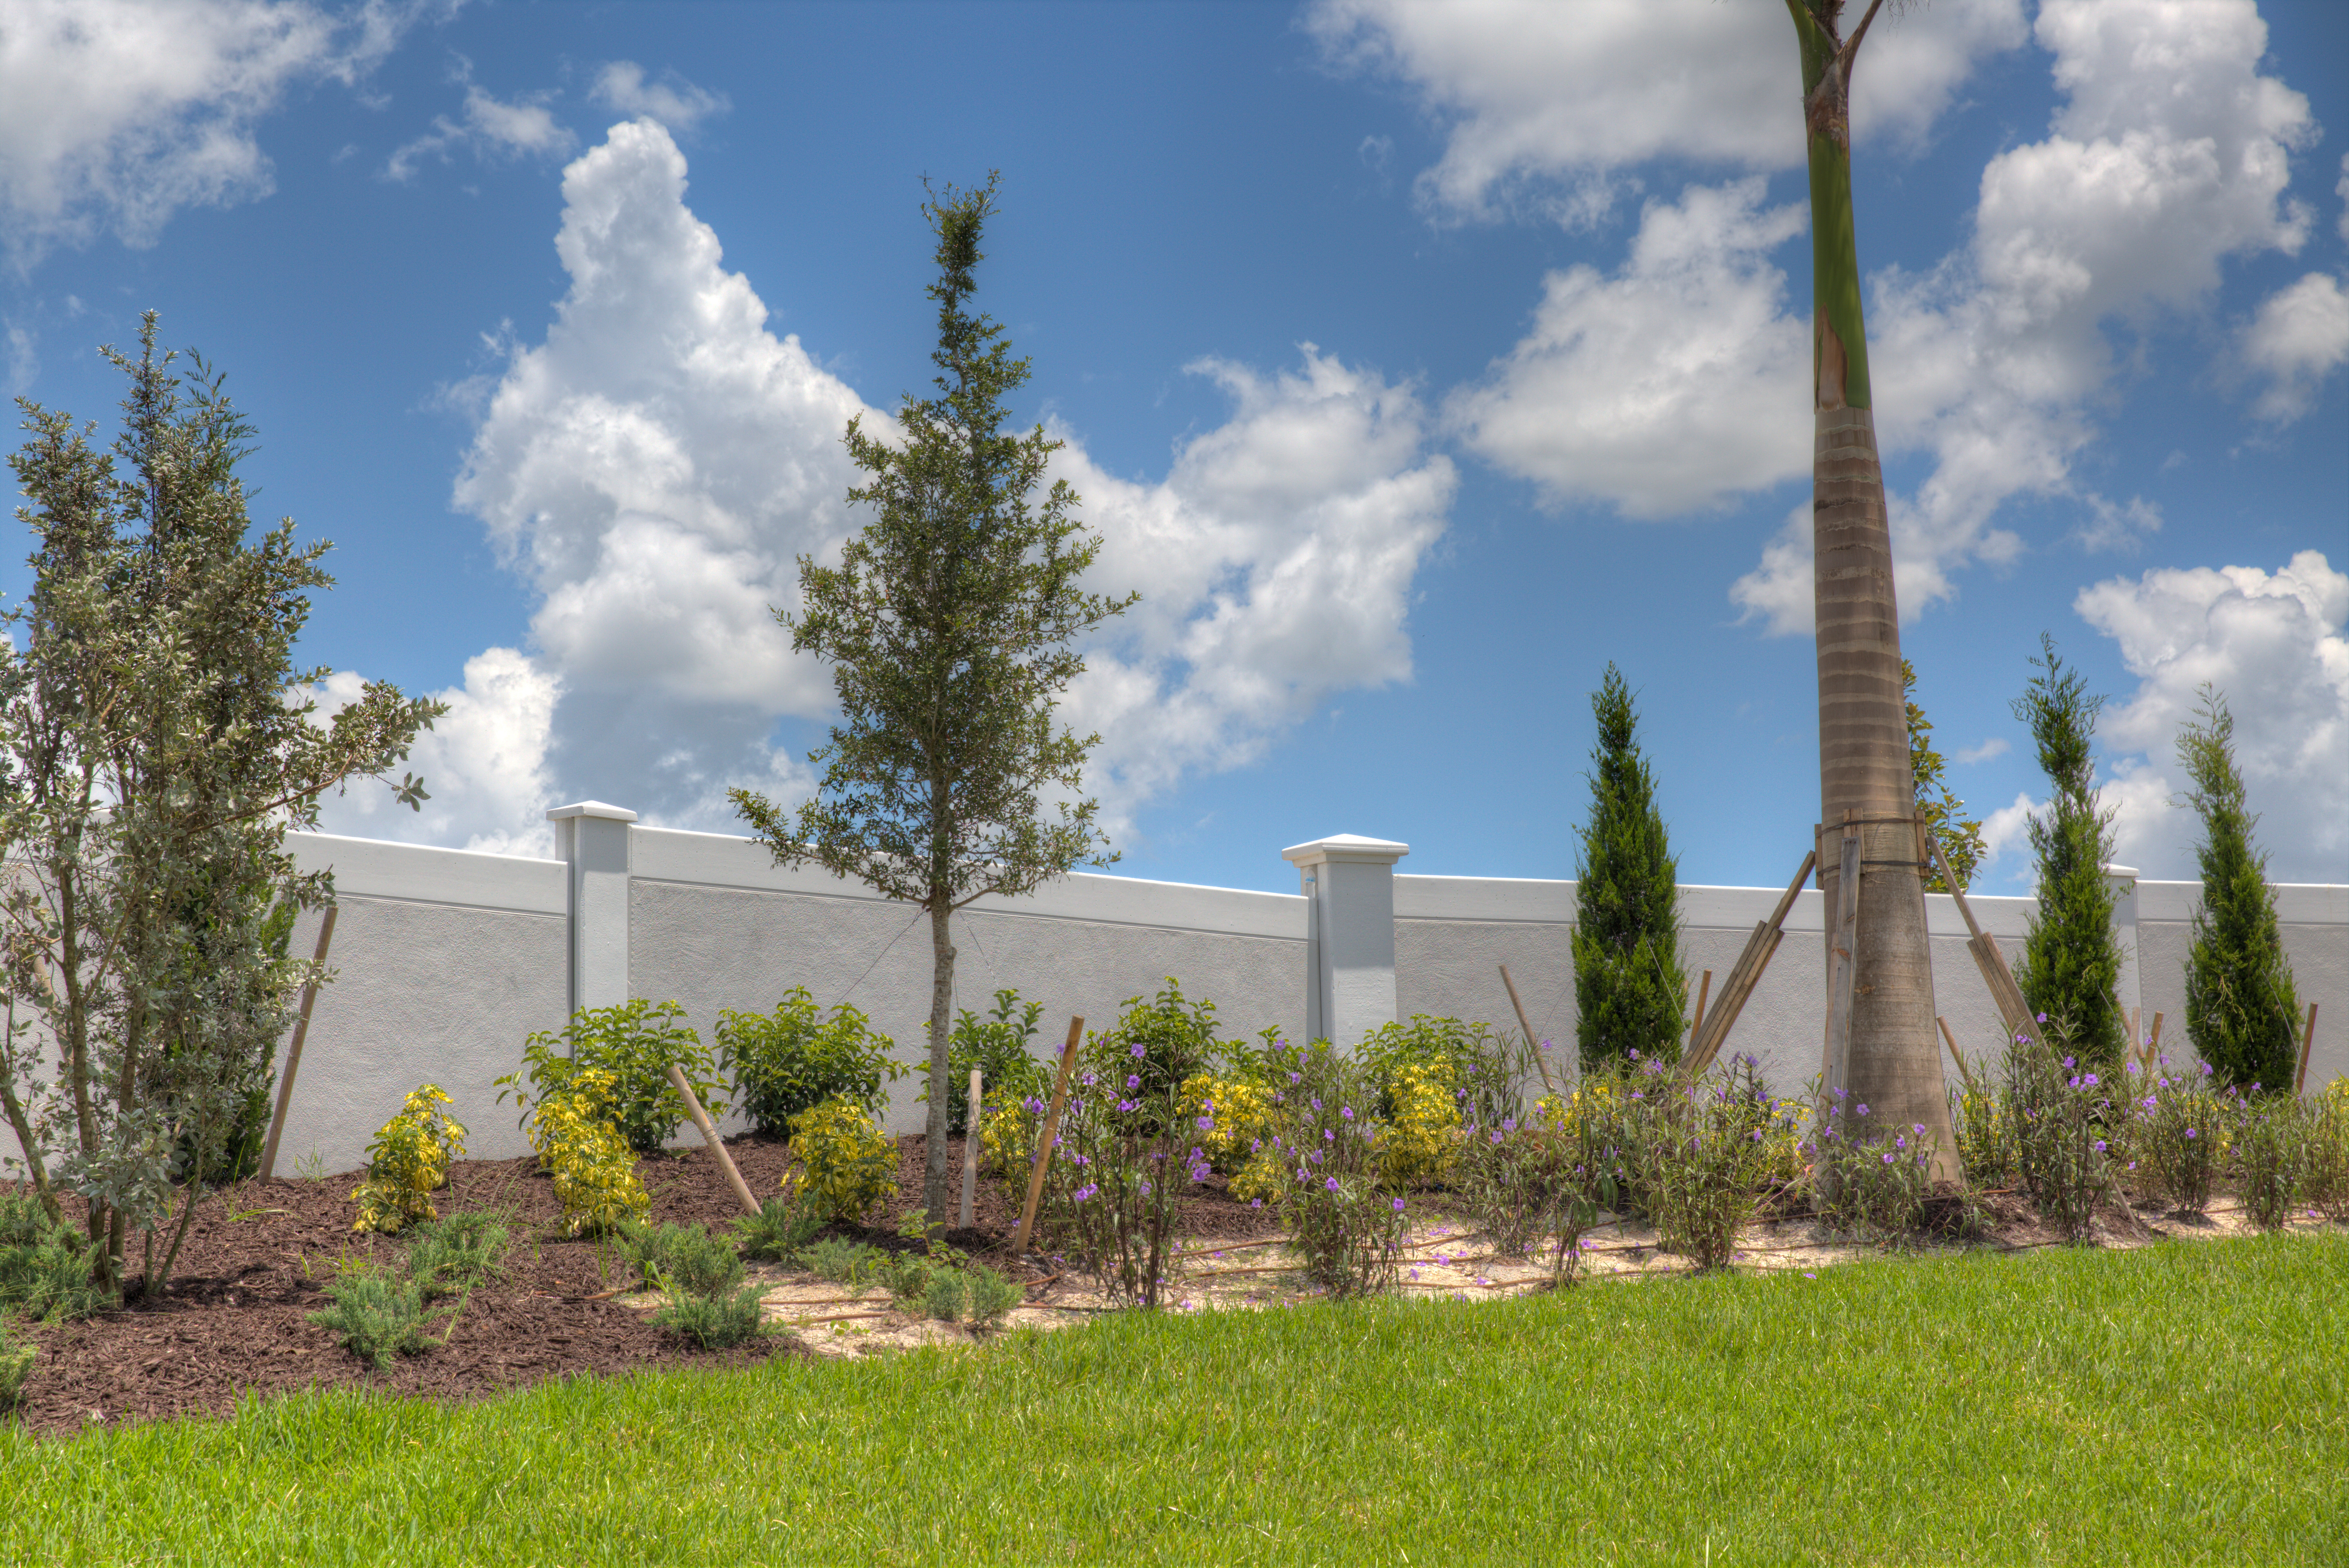 Permacast precast concrete fence with landscaping - Permawall